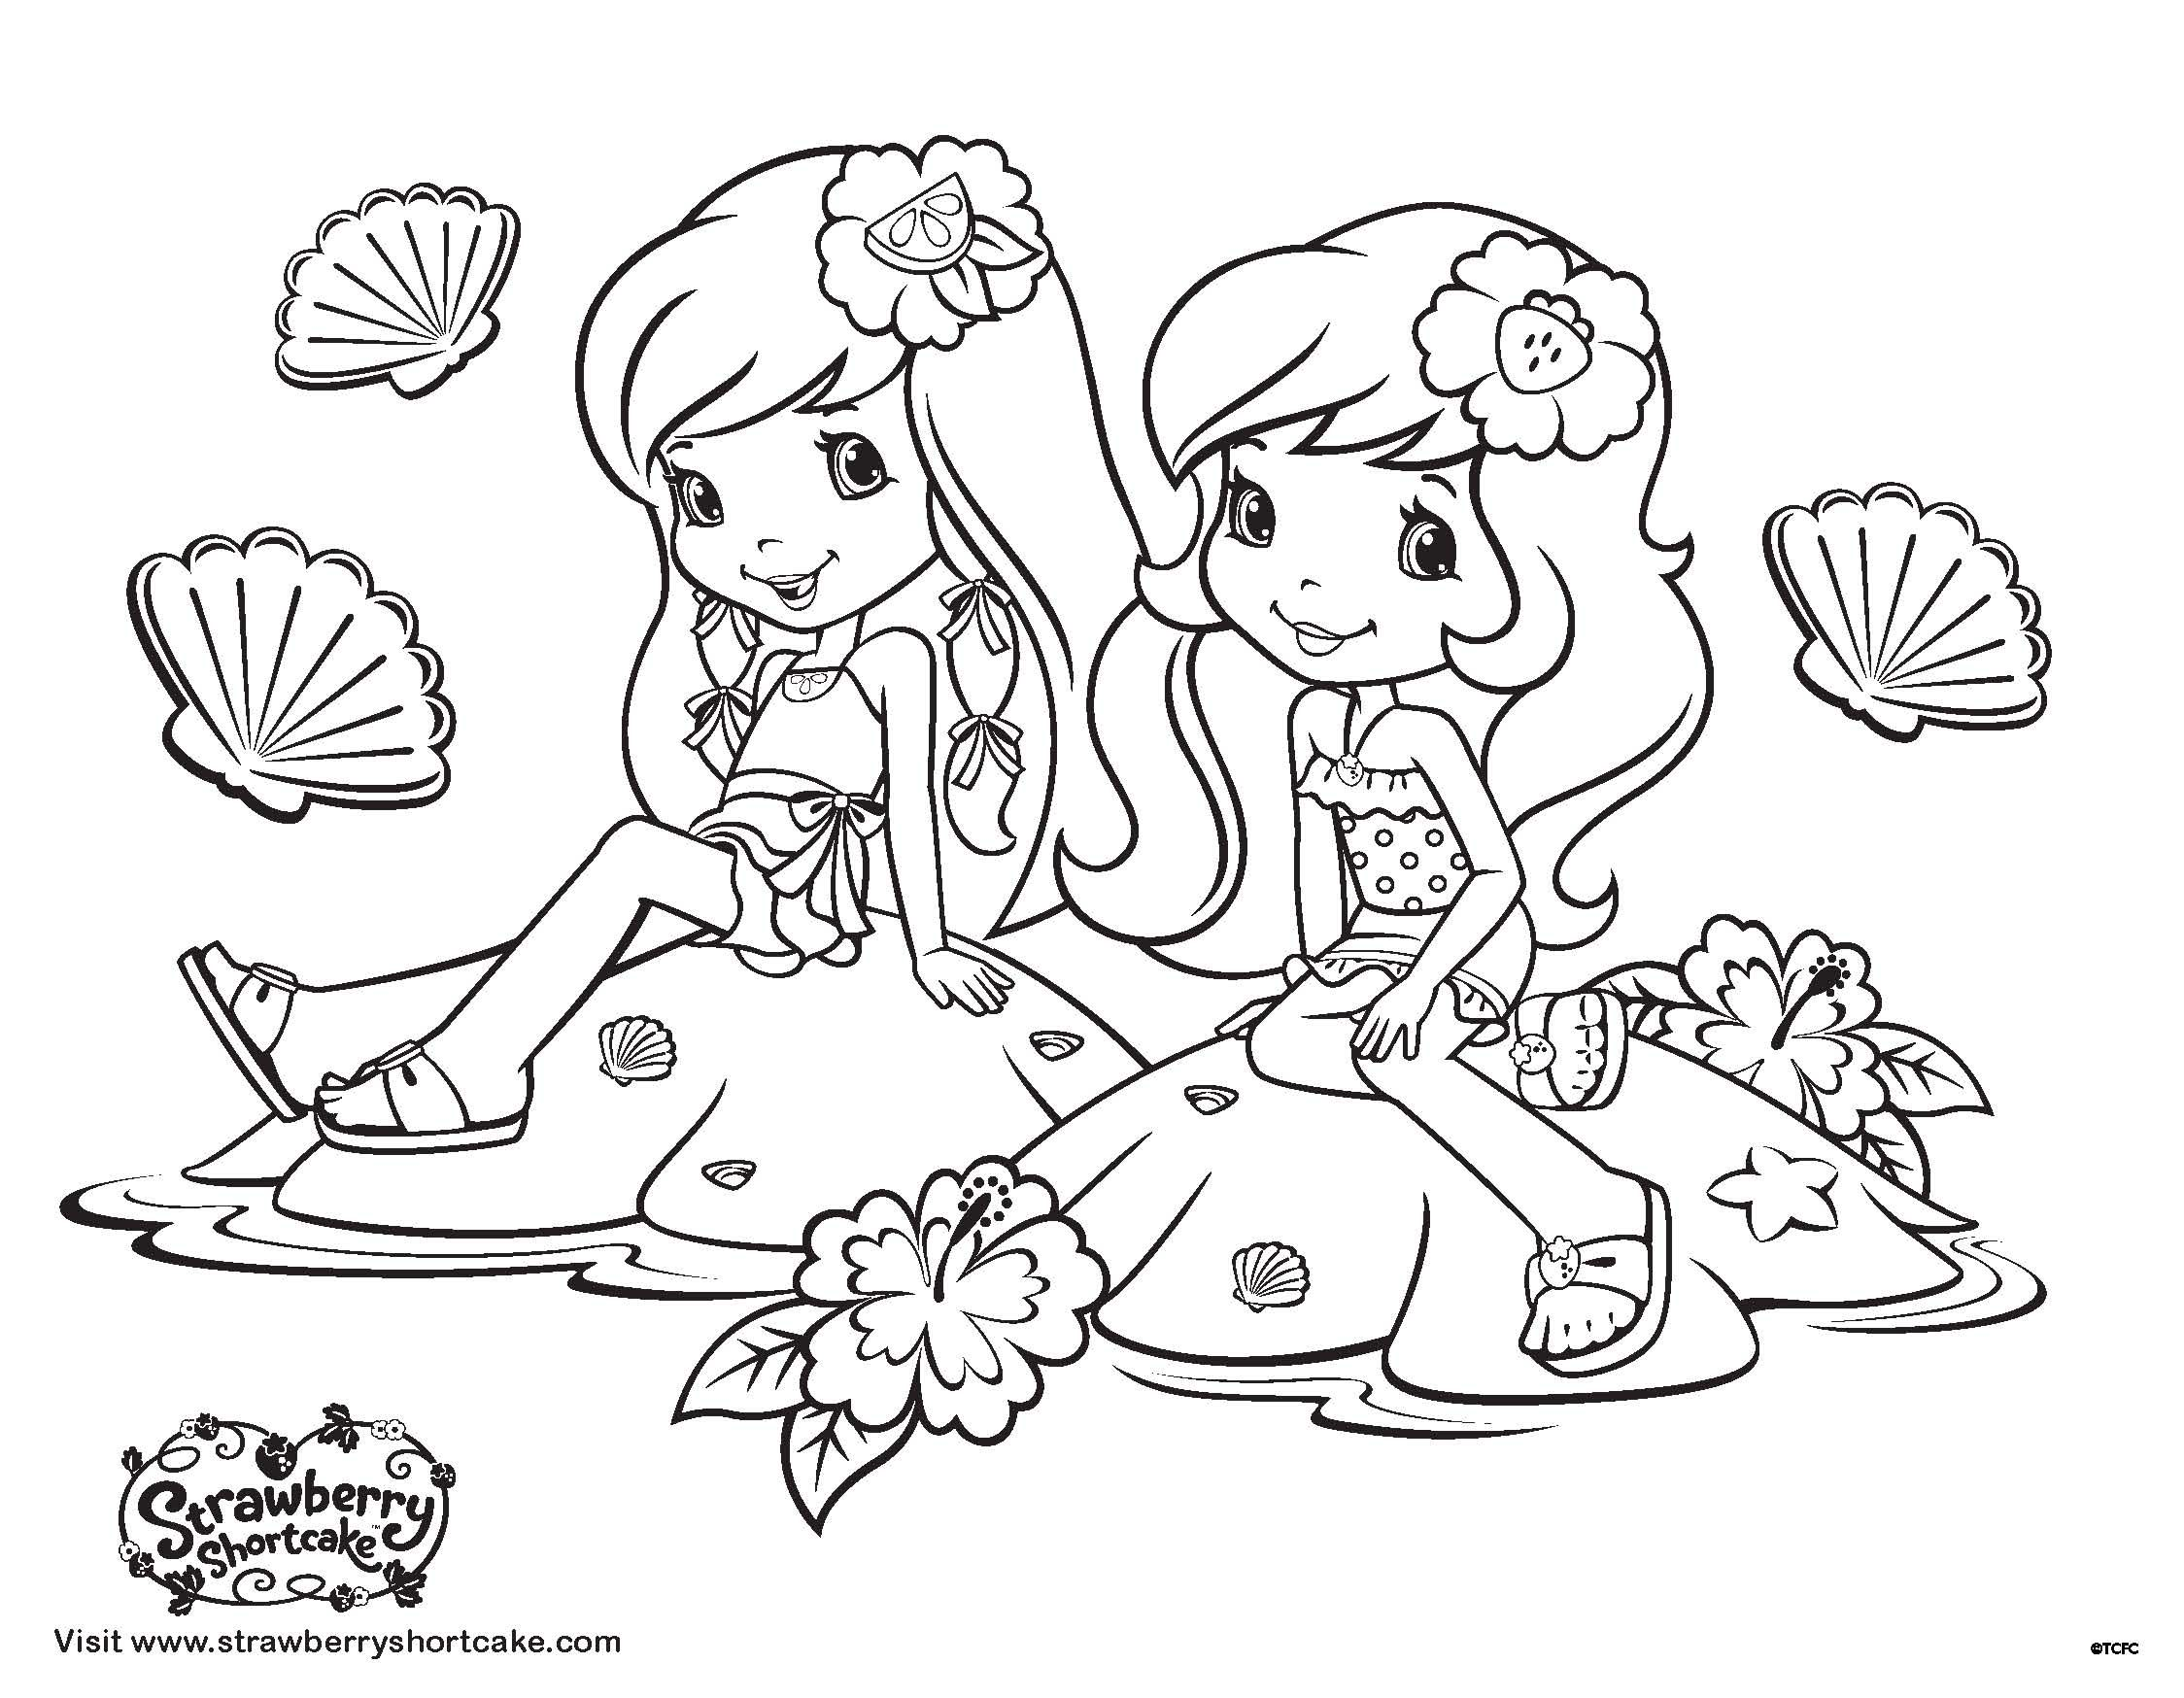 Color up some summer fun with this new coloring book page from the